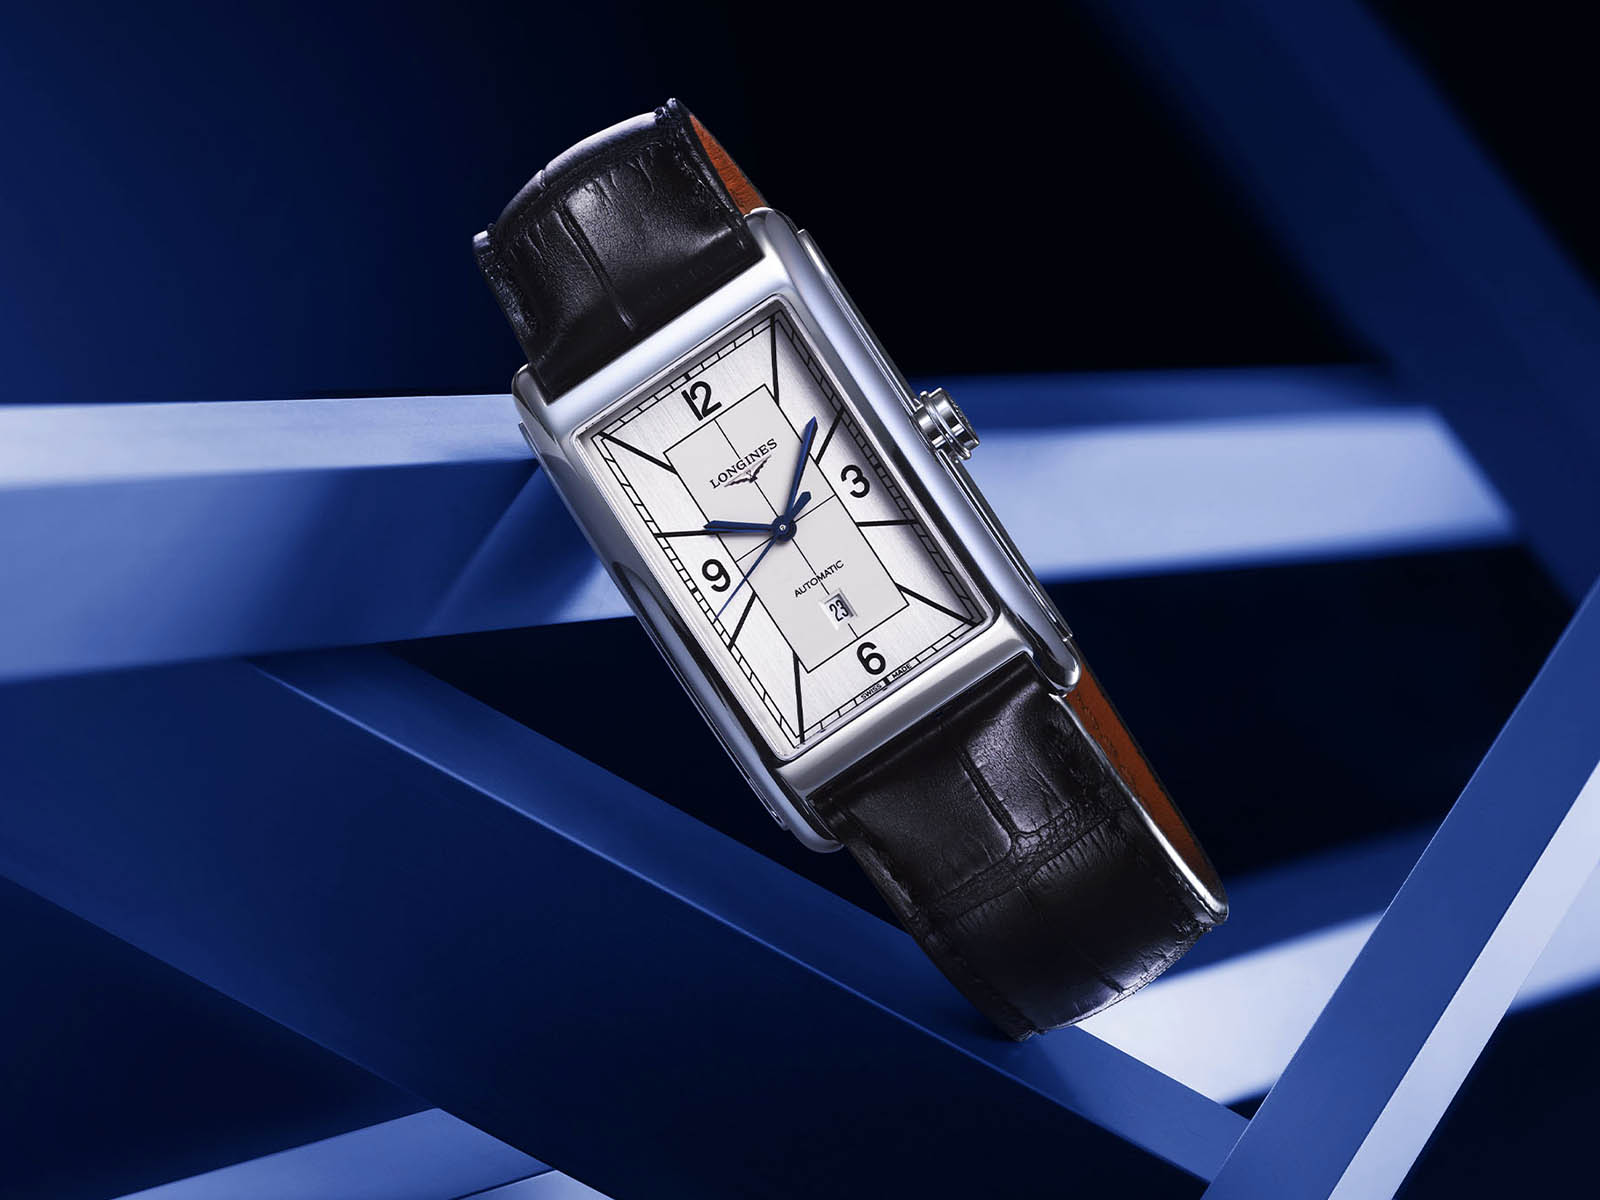 l5-767-4-73-3-longines-dolcevita-automatic-art-deco-sector-dial-1.jpg